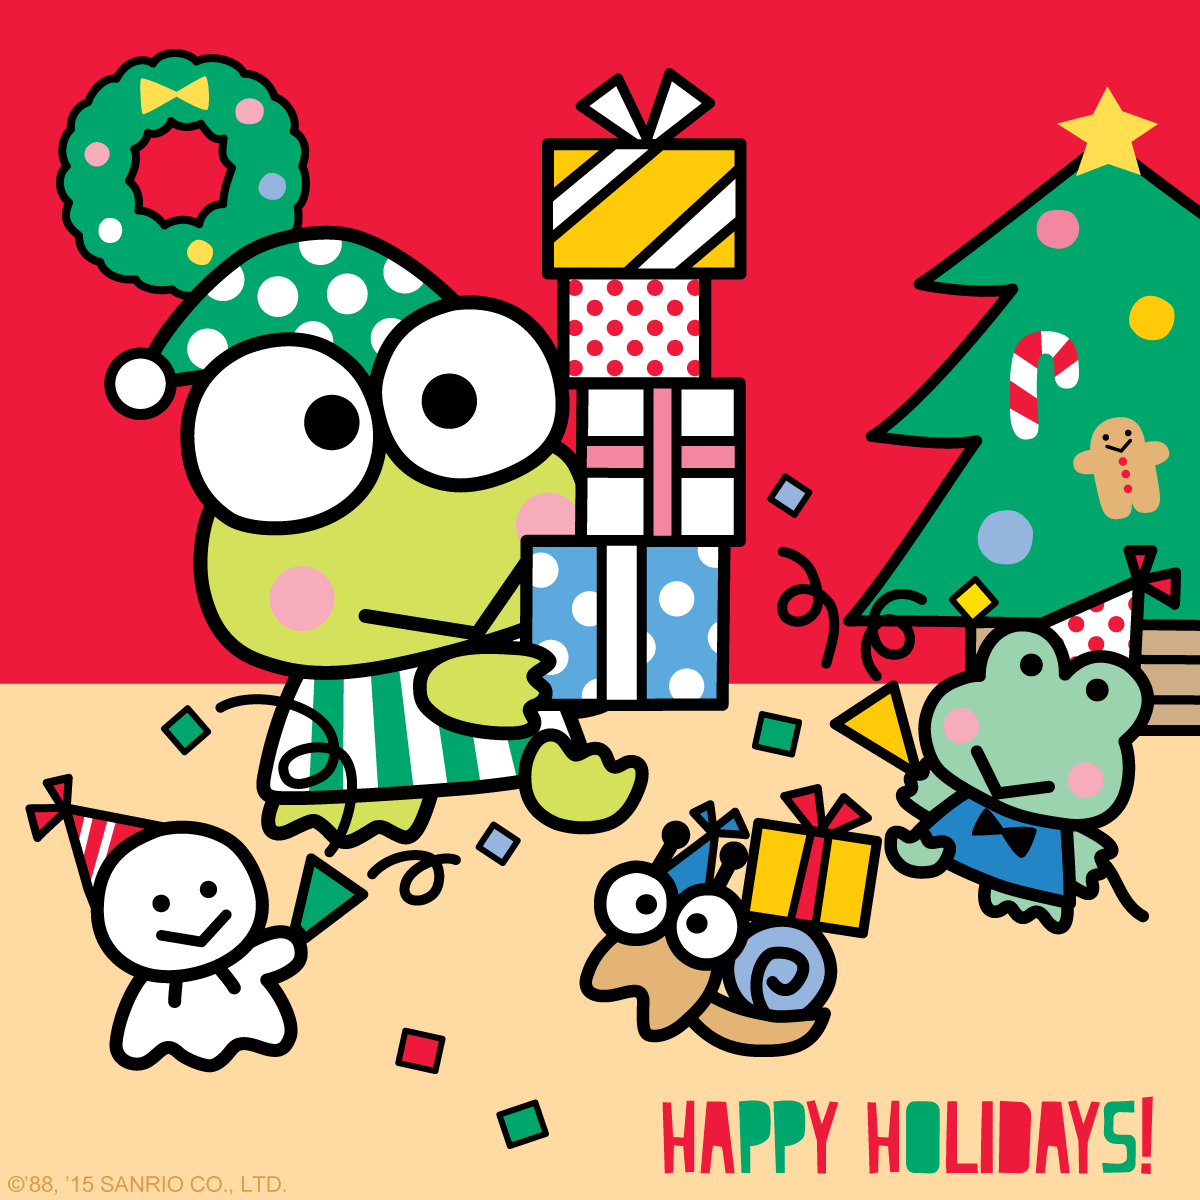 Keroppi Wallpaper Wallpapers: Happy Holidays From Keroppi And All Of His Friends At